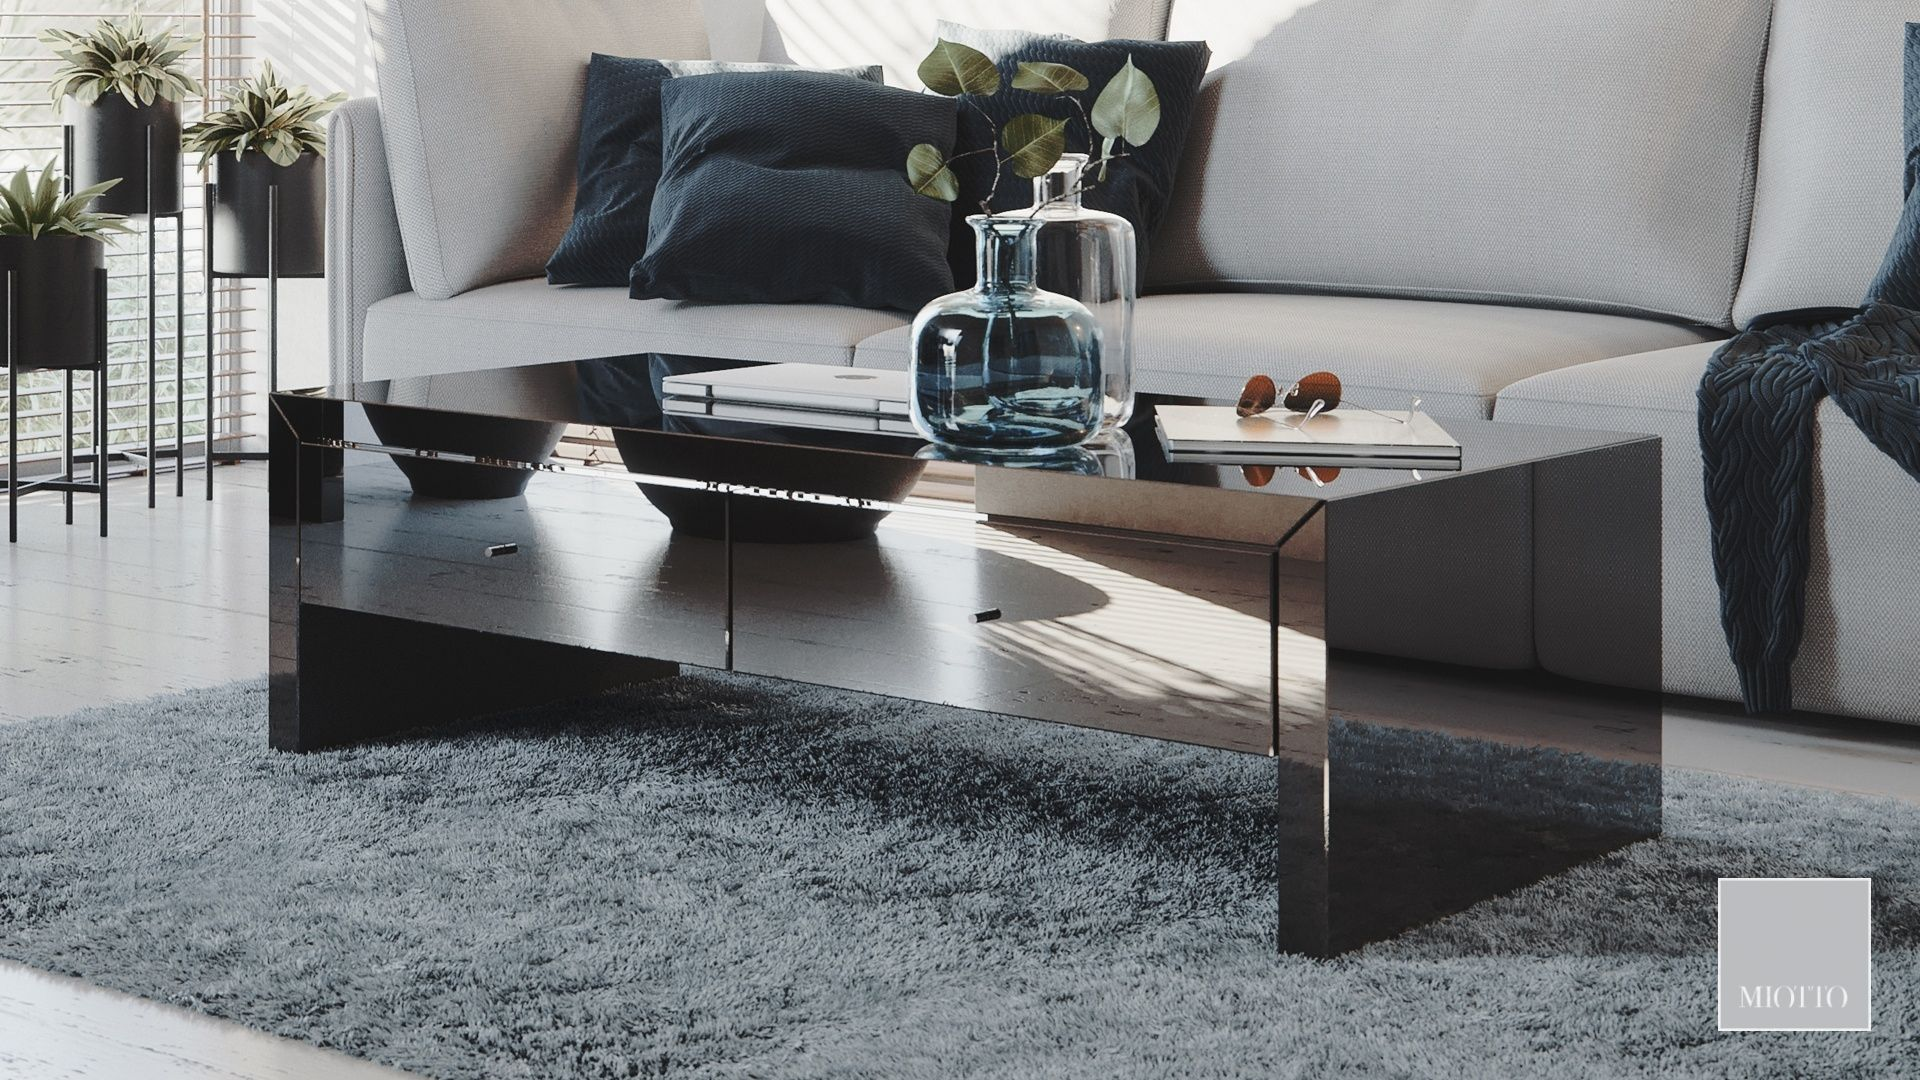 miotto_losa coffee table 0001_web